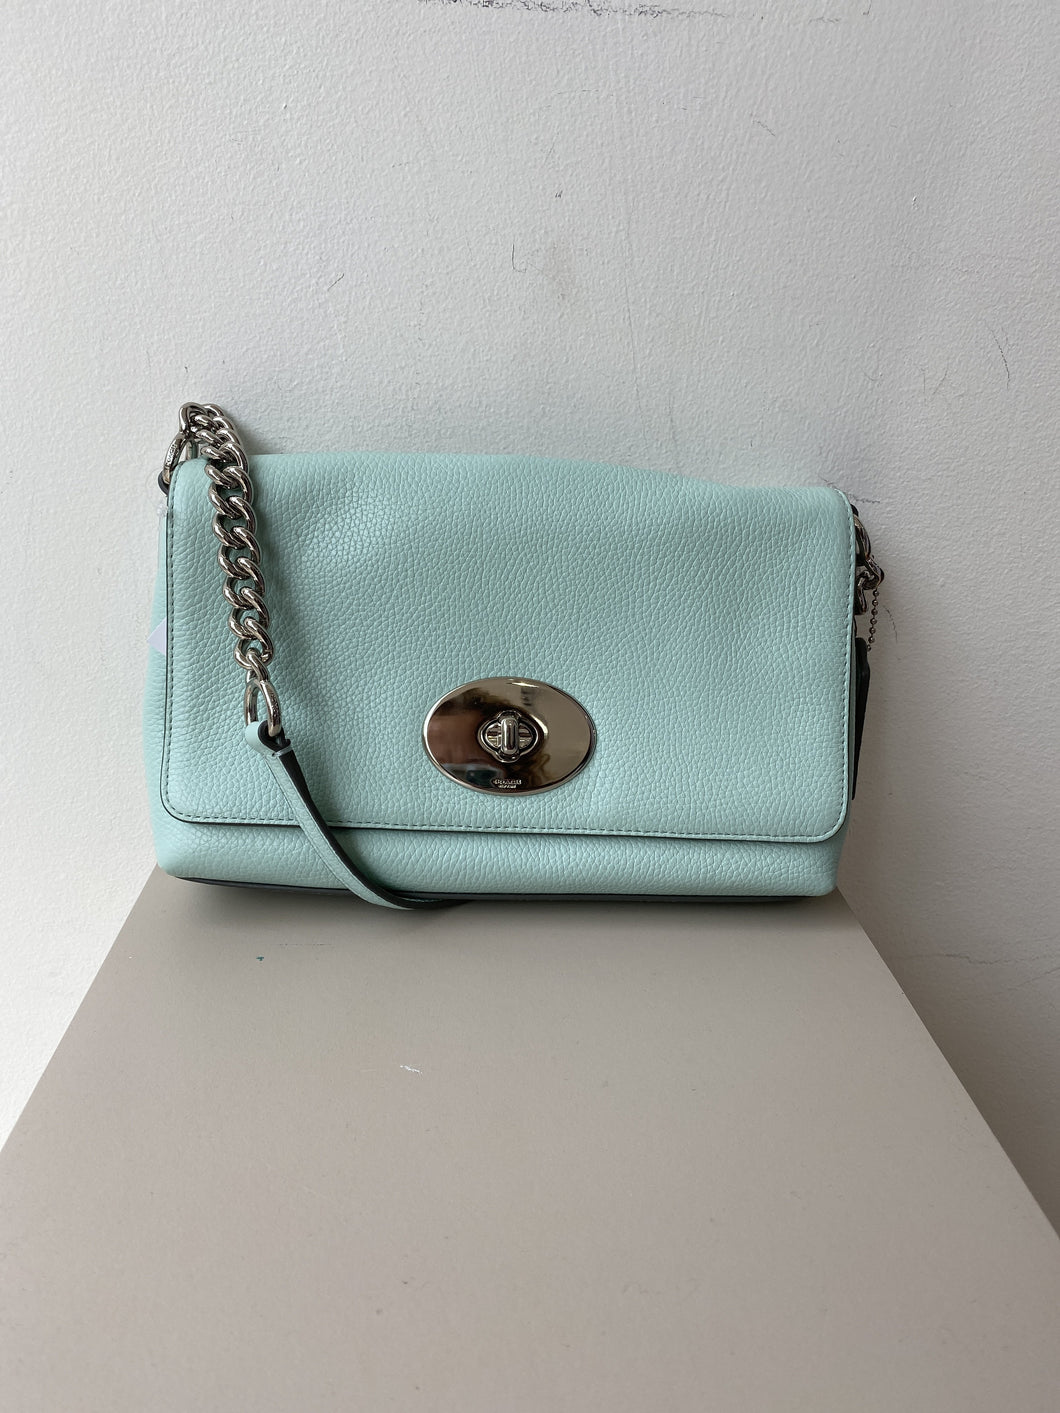 Coach mint leather crossbody 53803 - My Girlfriend's Wardrobe York Pa